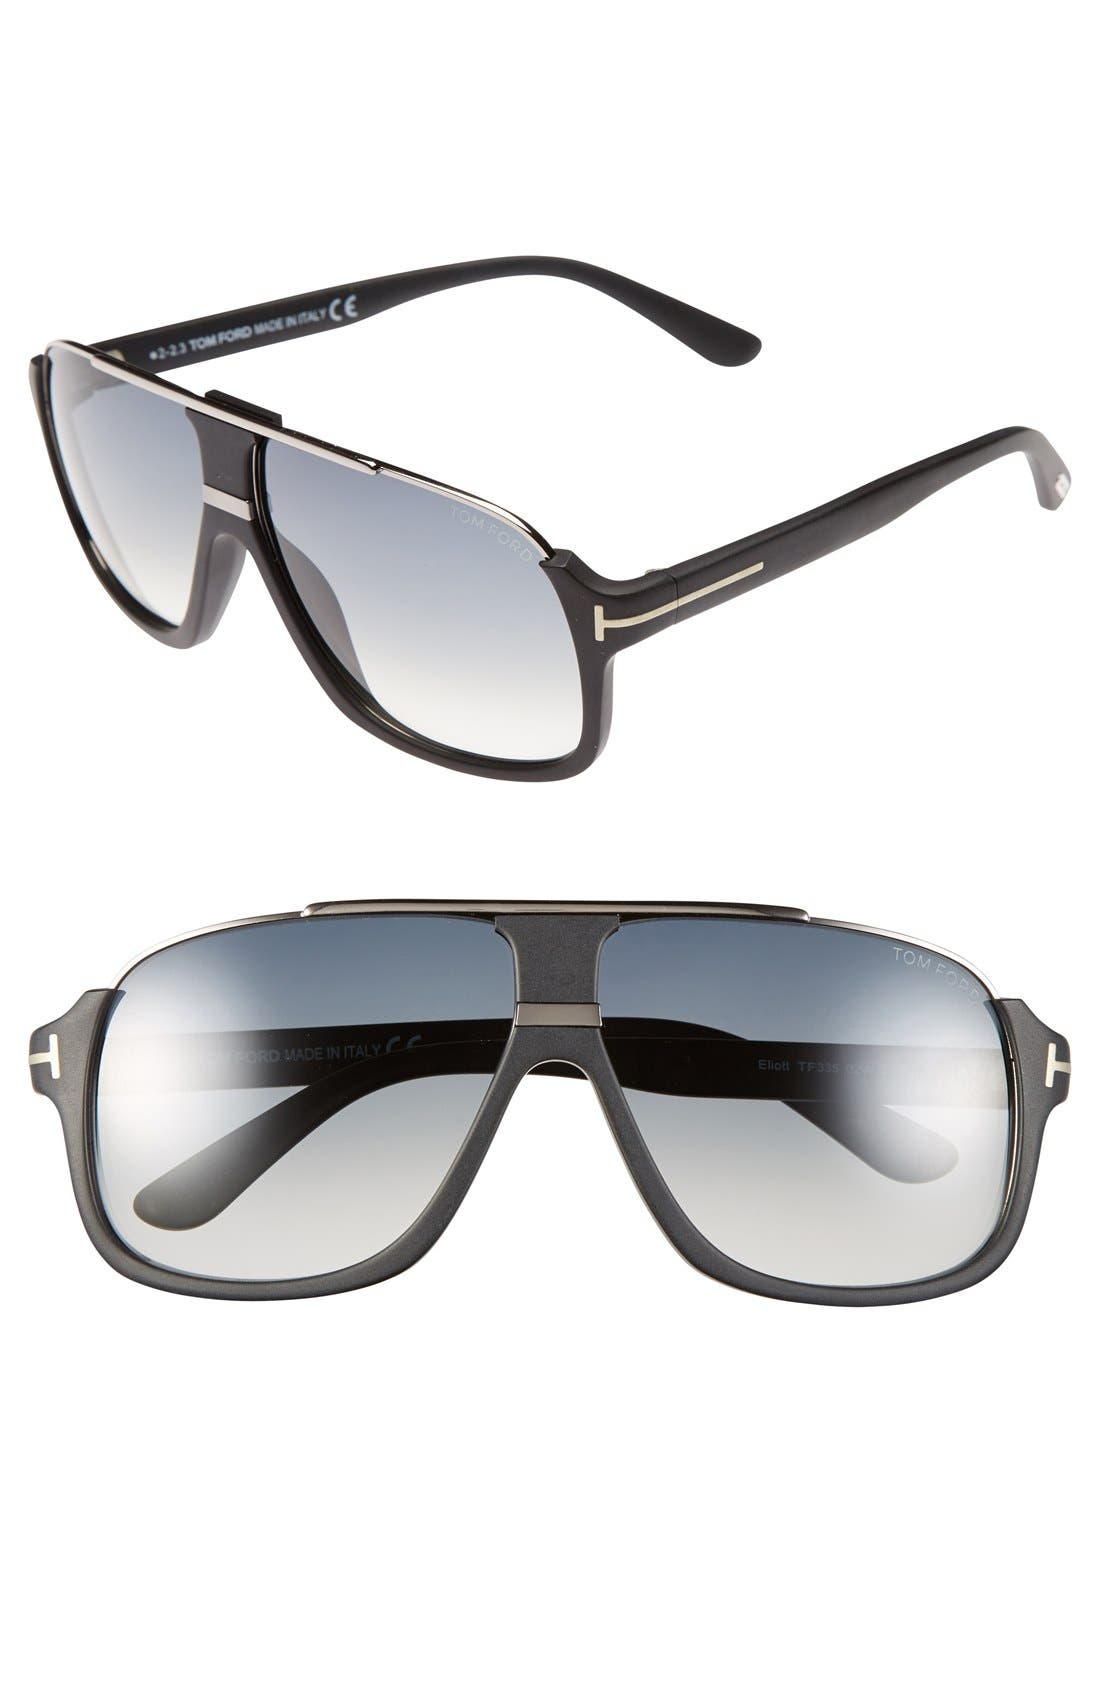 Main Image - Tom Ford 'Eliot' 60mm Sunglasses